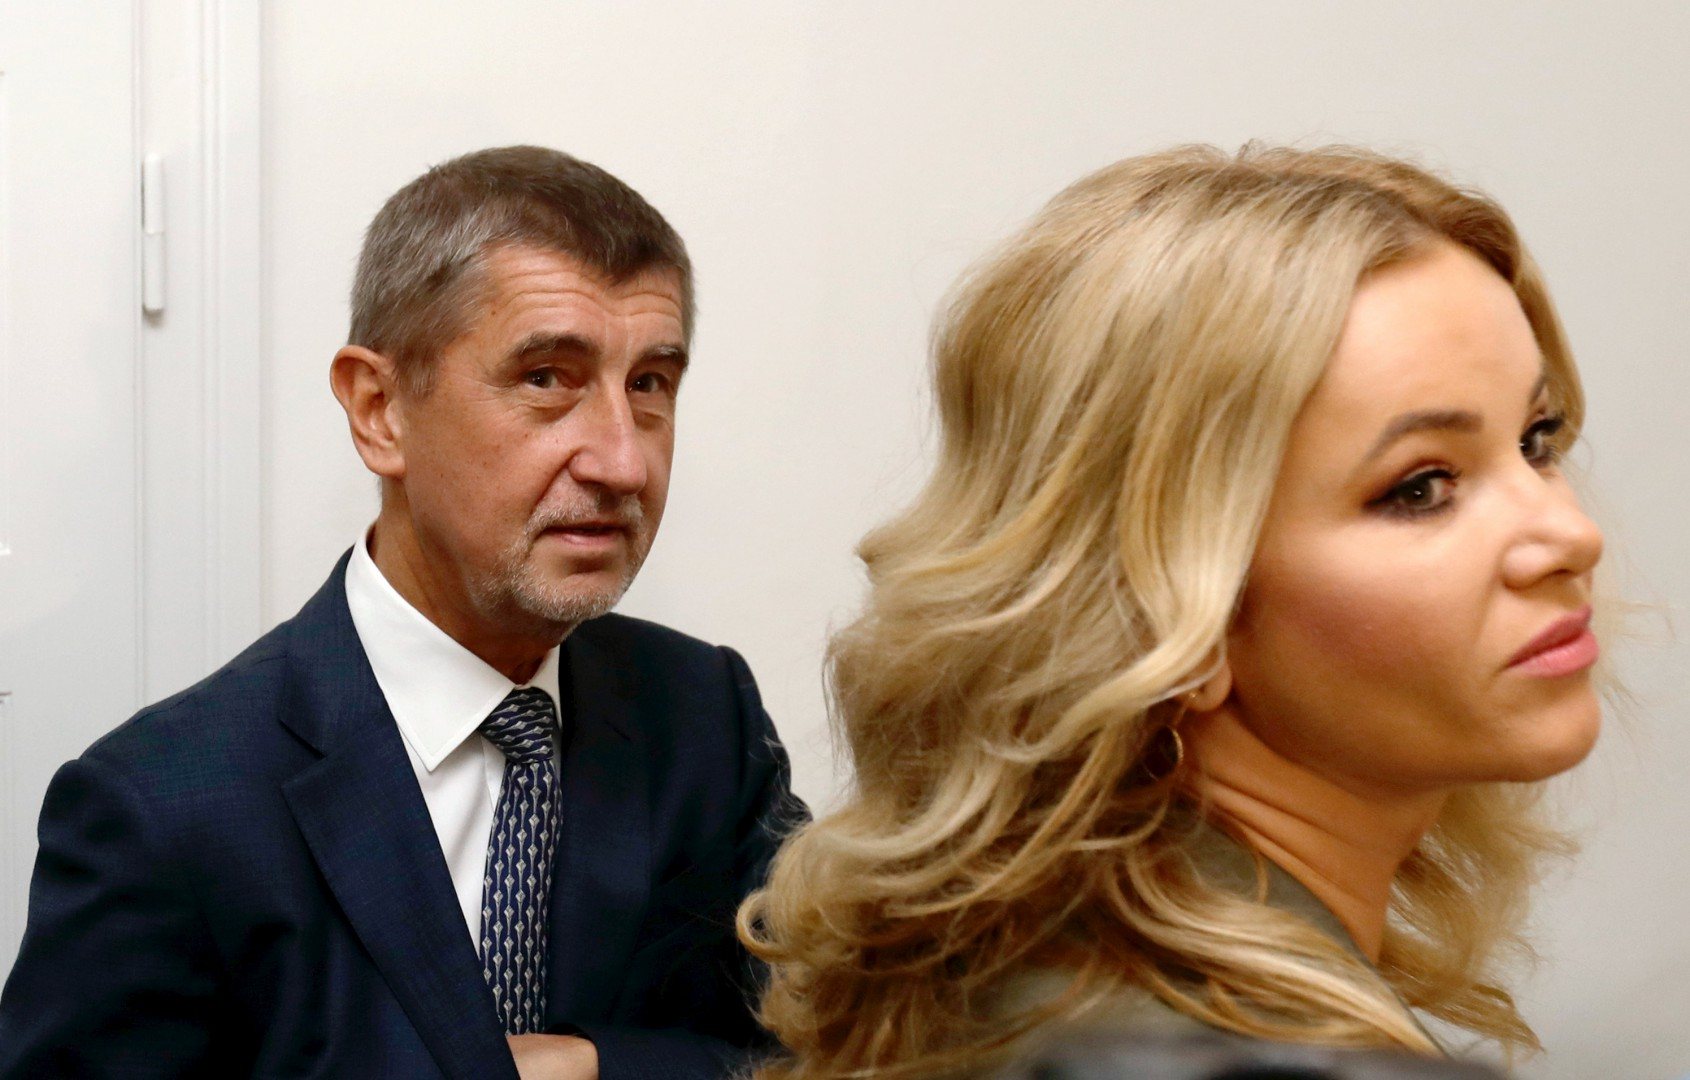 The leader of ANO party Andrej Babis and his wife Monika arrive to cast their vote in parliamentary elections in Prague, Czech Republic October 20, 2017.    REUTERS/David W Cerny